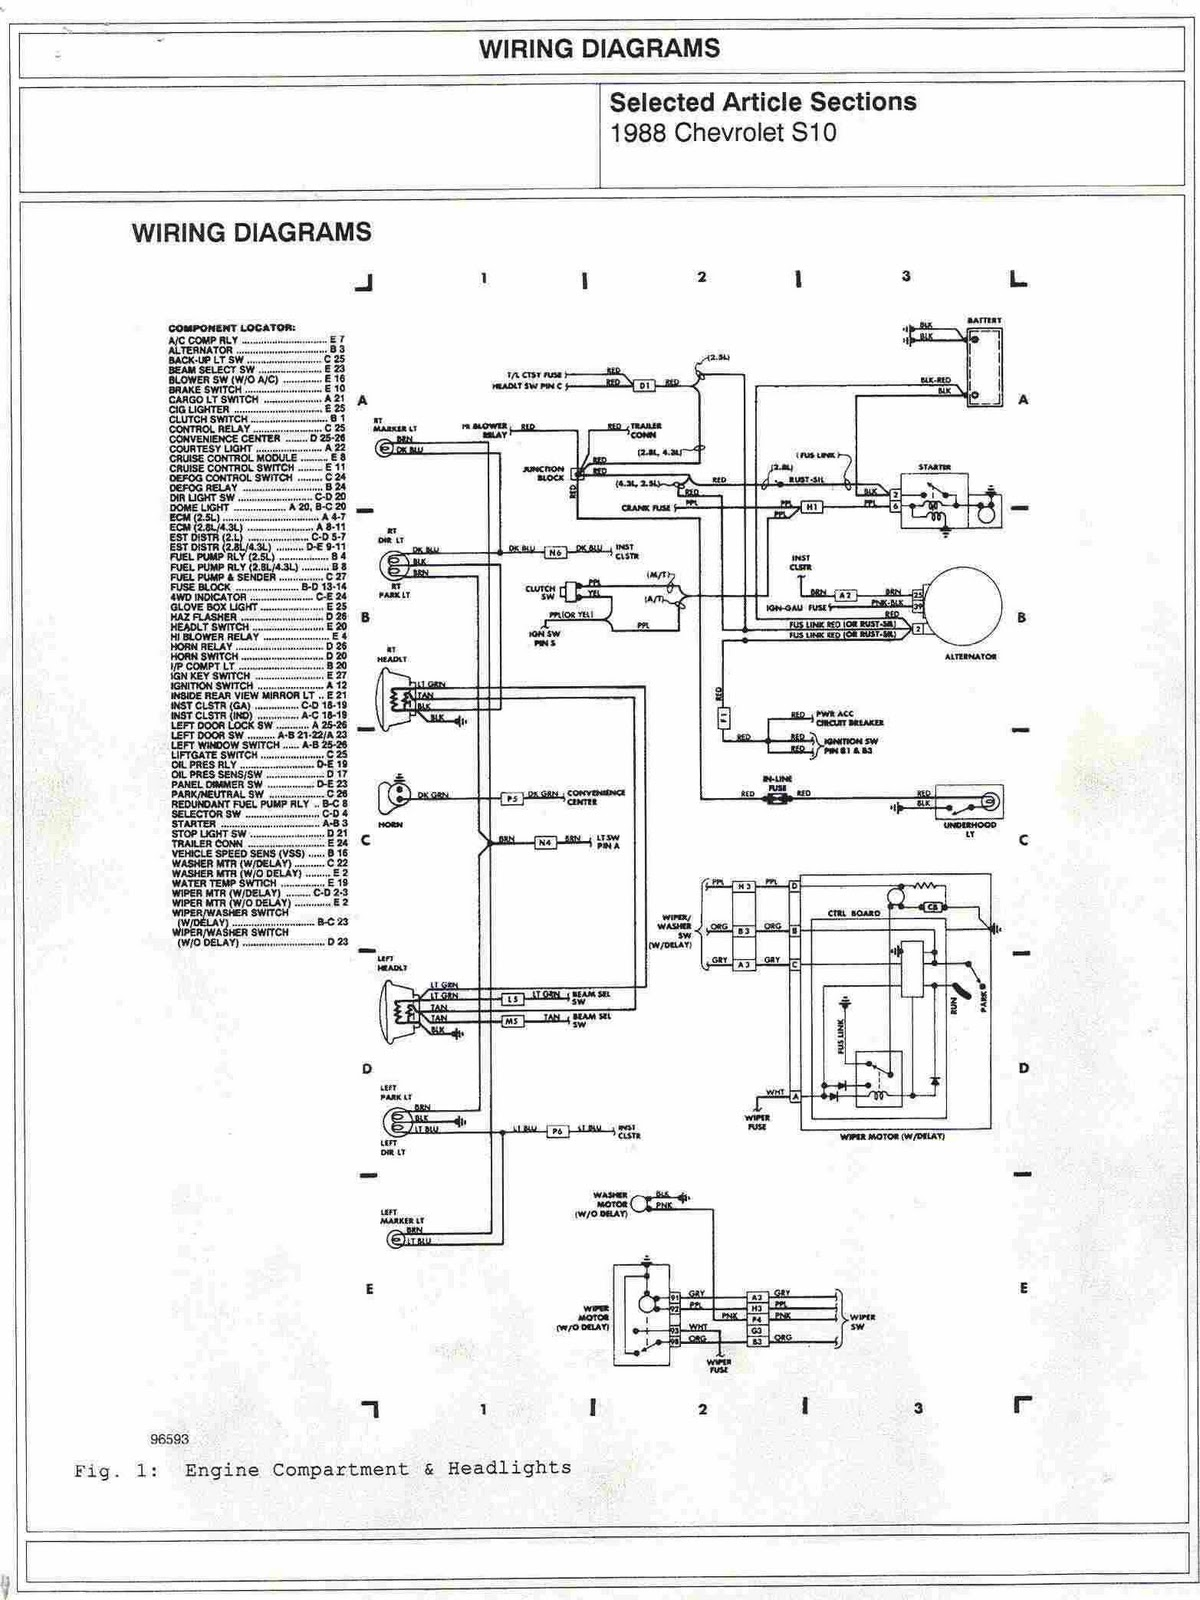 1988+Chevrolet+S10+Engine+Compartment+and+Headlights+Wiring+Diagrams 1988 chevrolet s10 engine compartment and headlights wiring 1988 chevy s10 wiring diagram at bayanpartner.co